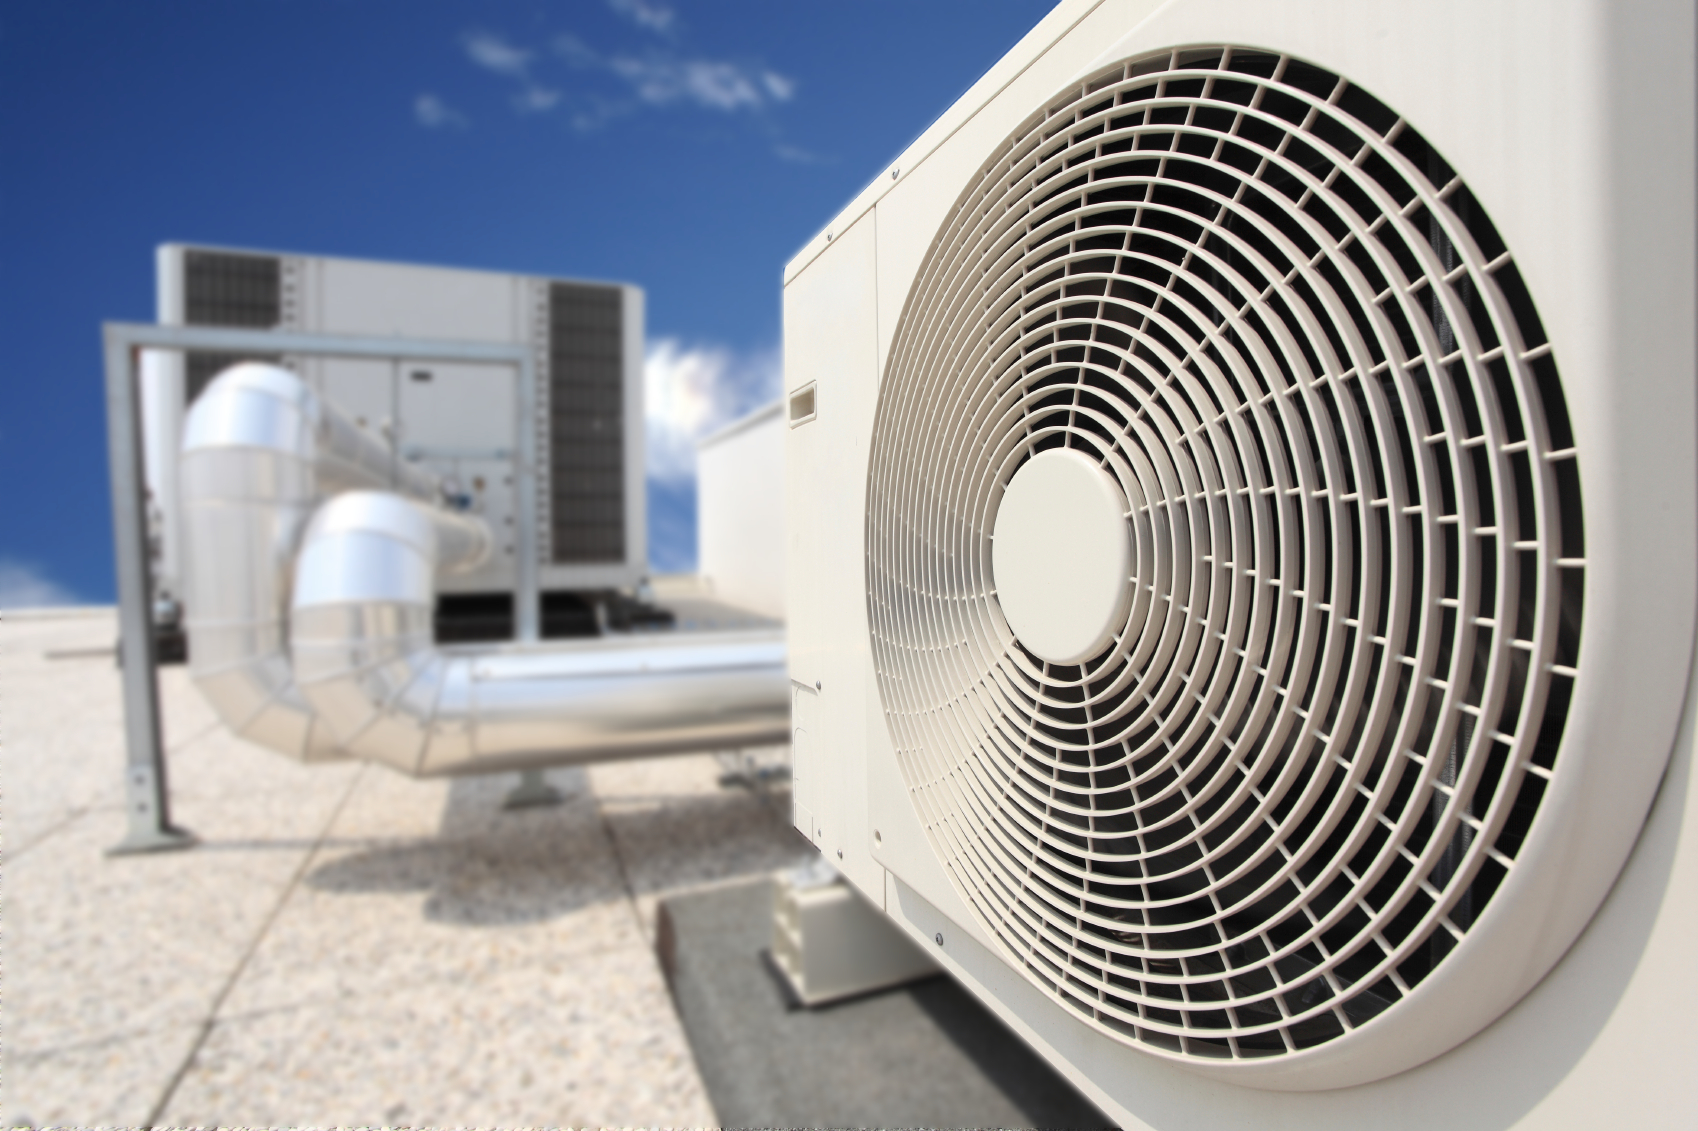 Formost Airconditioning Ltd